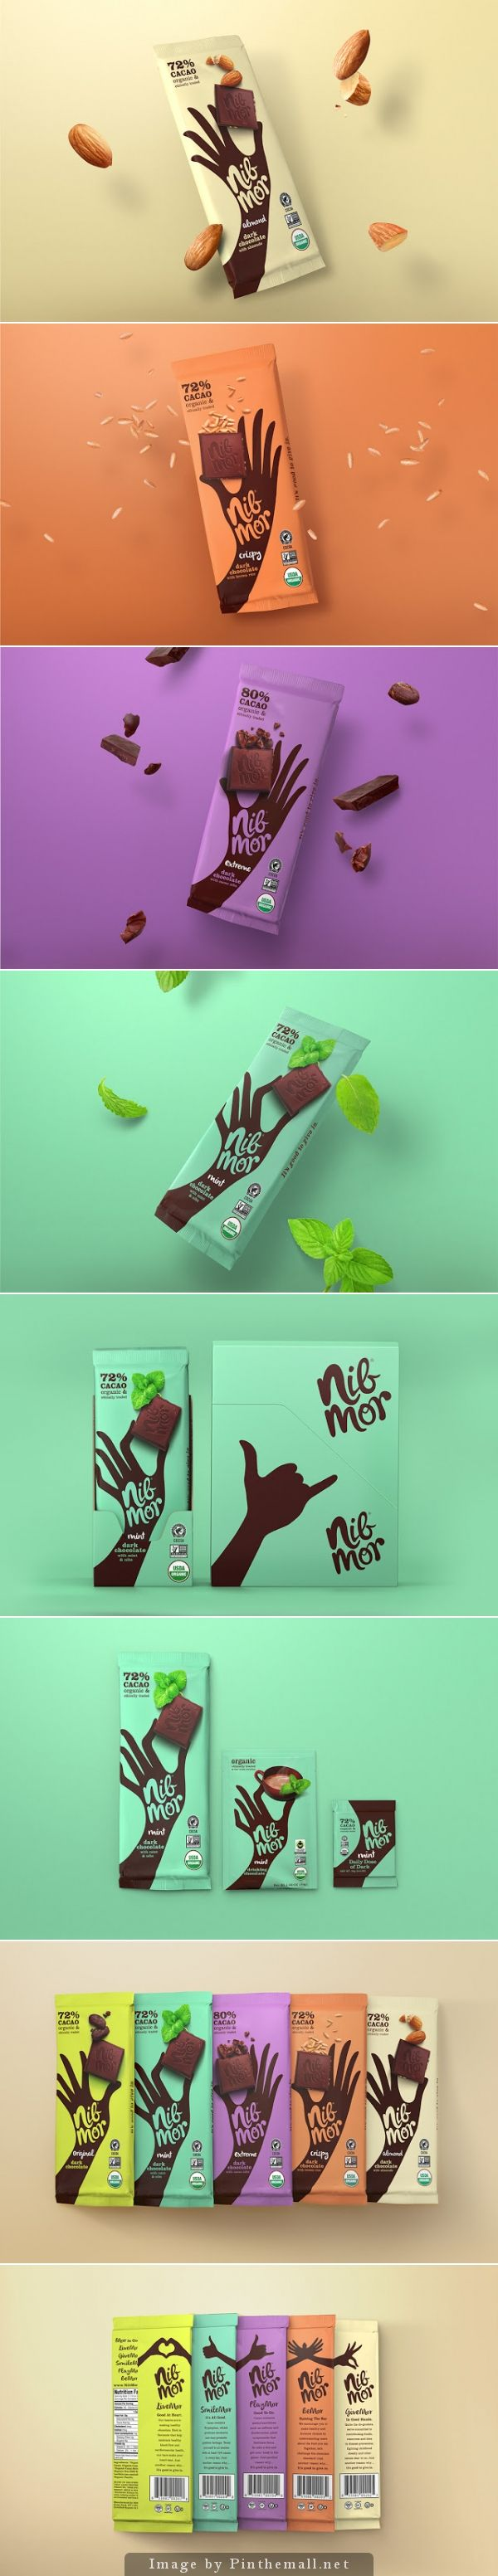 NibMor Agency: Pearlfisher Type of work: Commercial Country: New York, United States